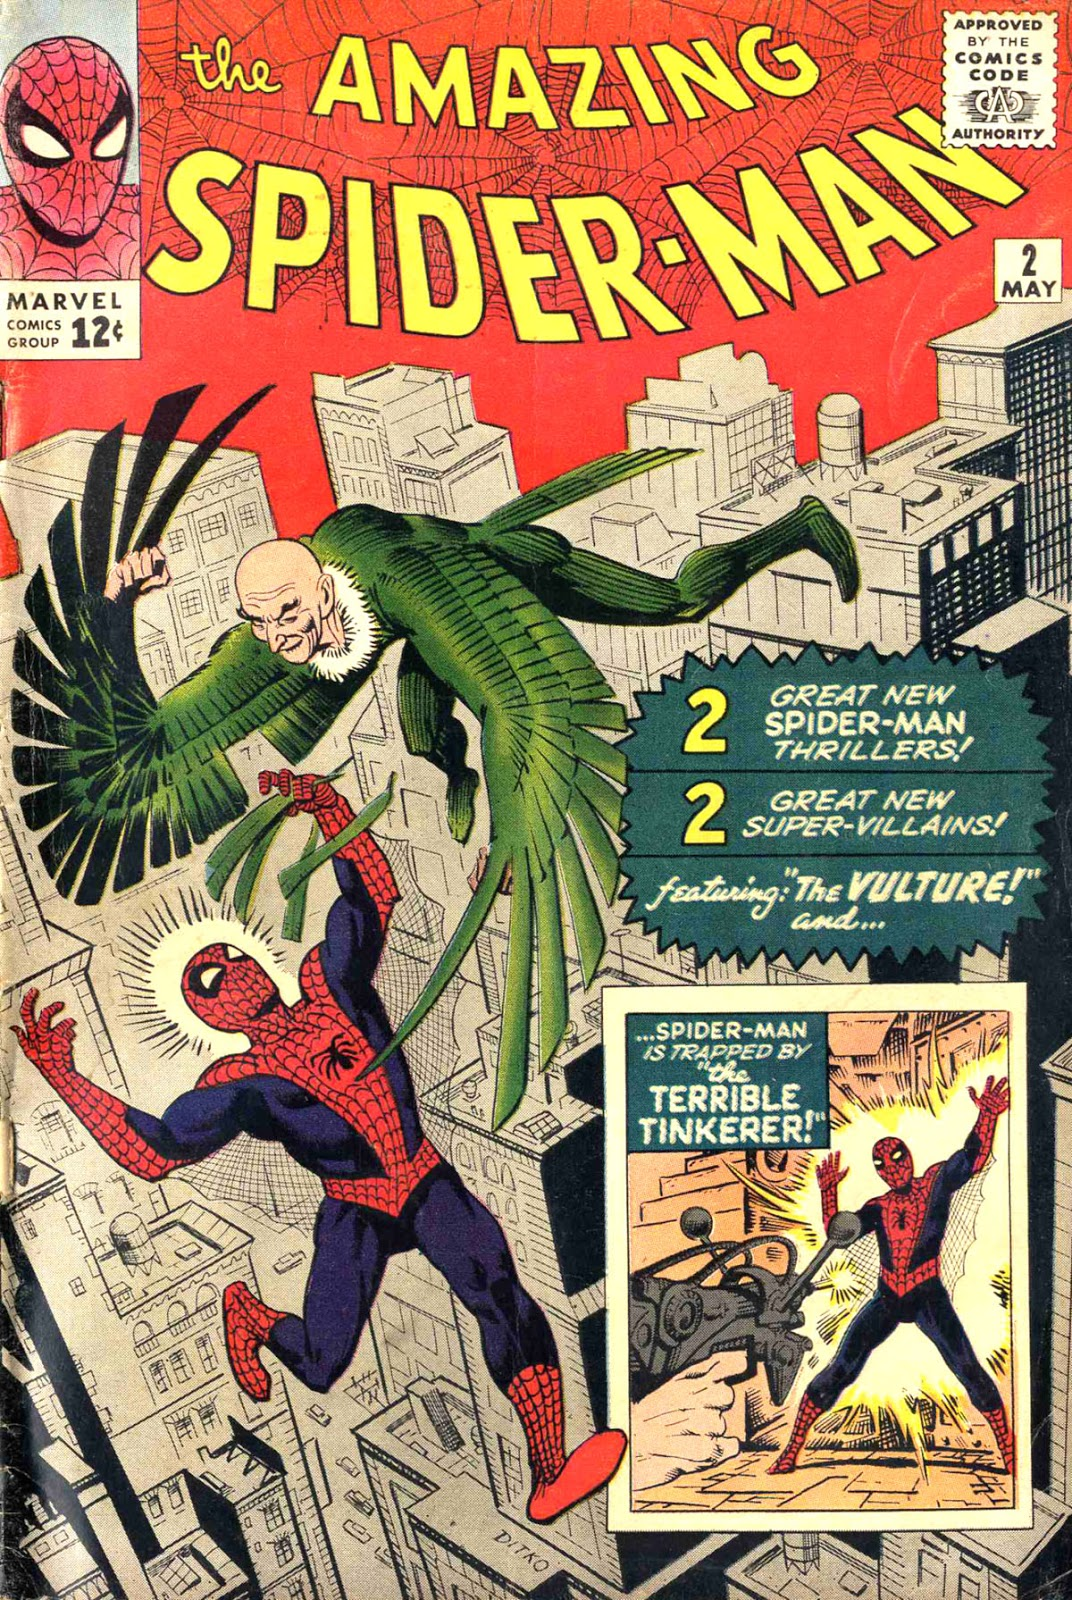 Silver Age Comics: The Marvel Covers